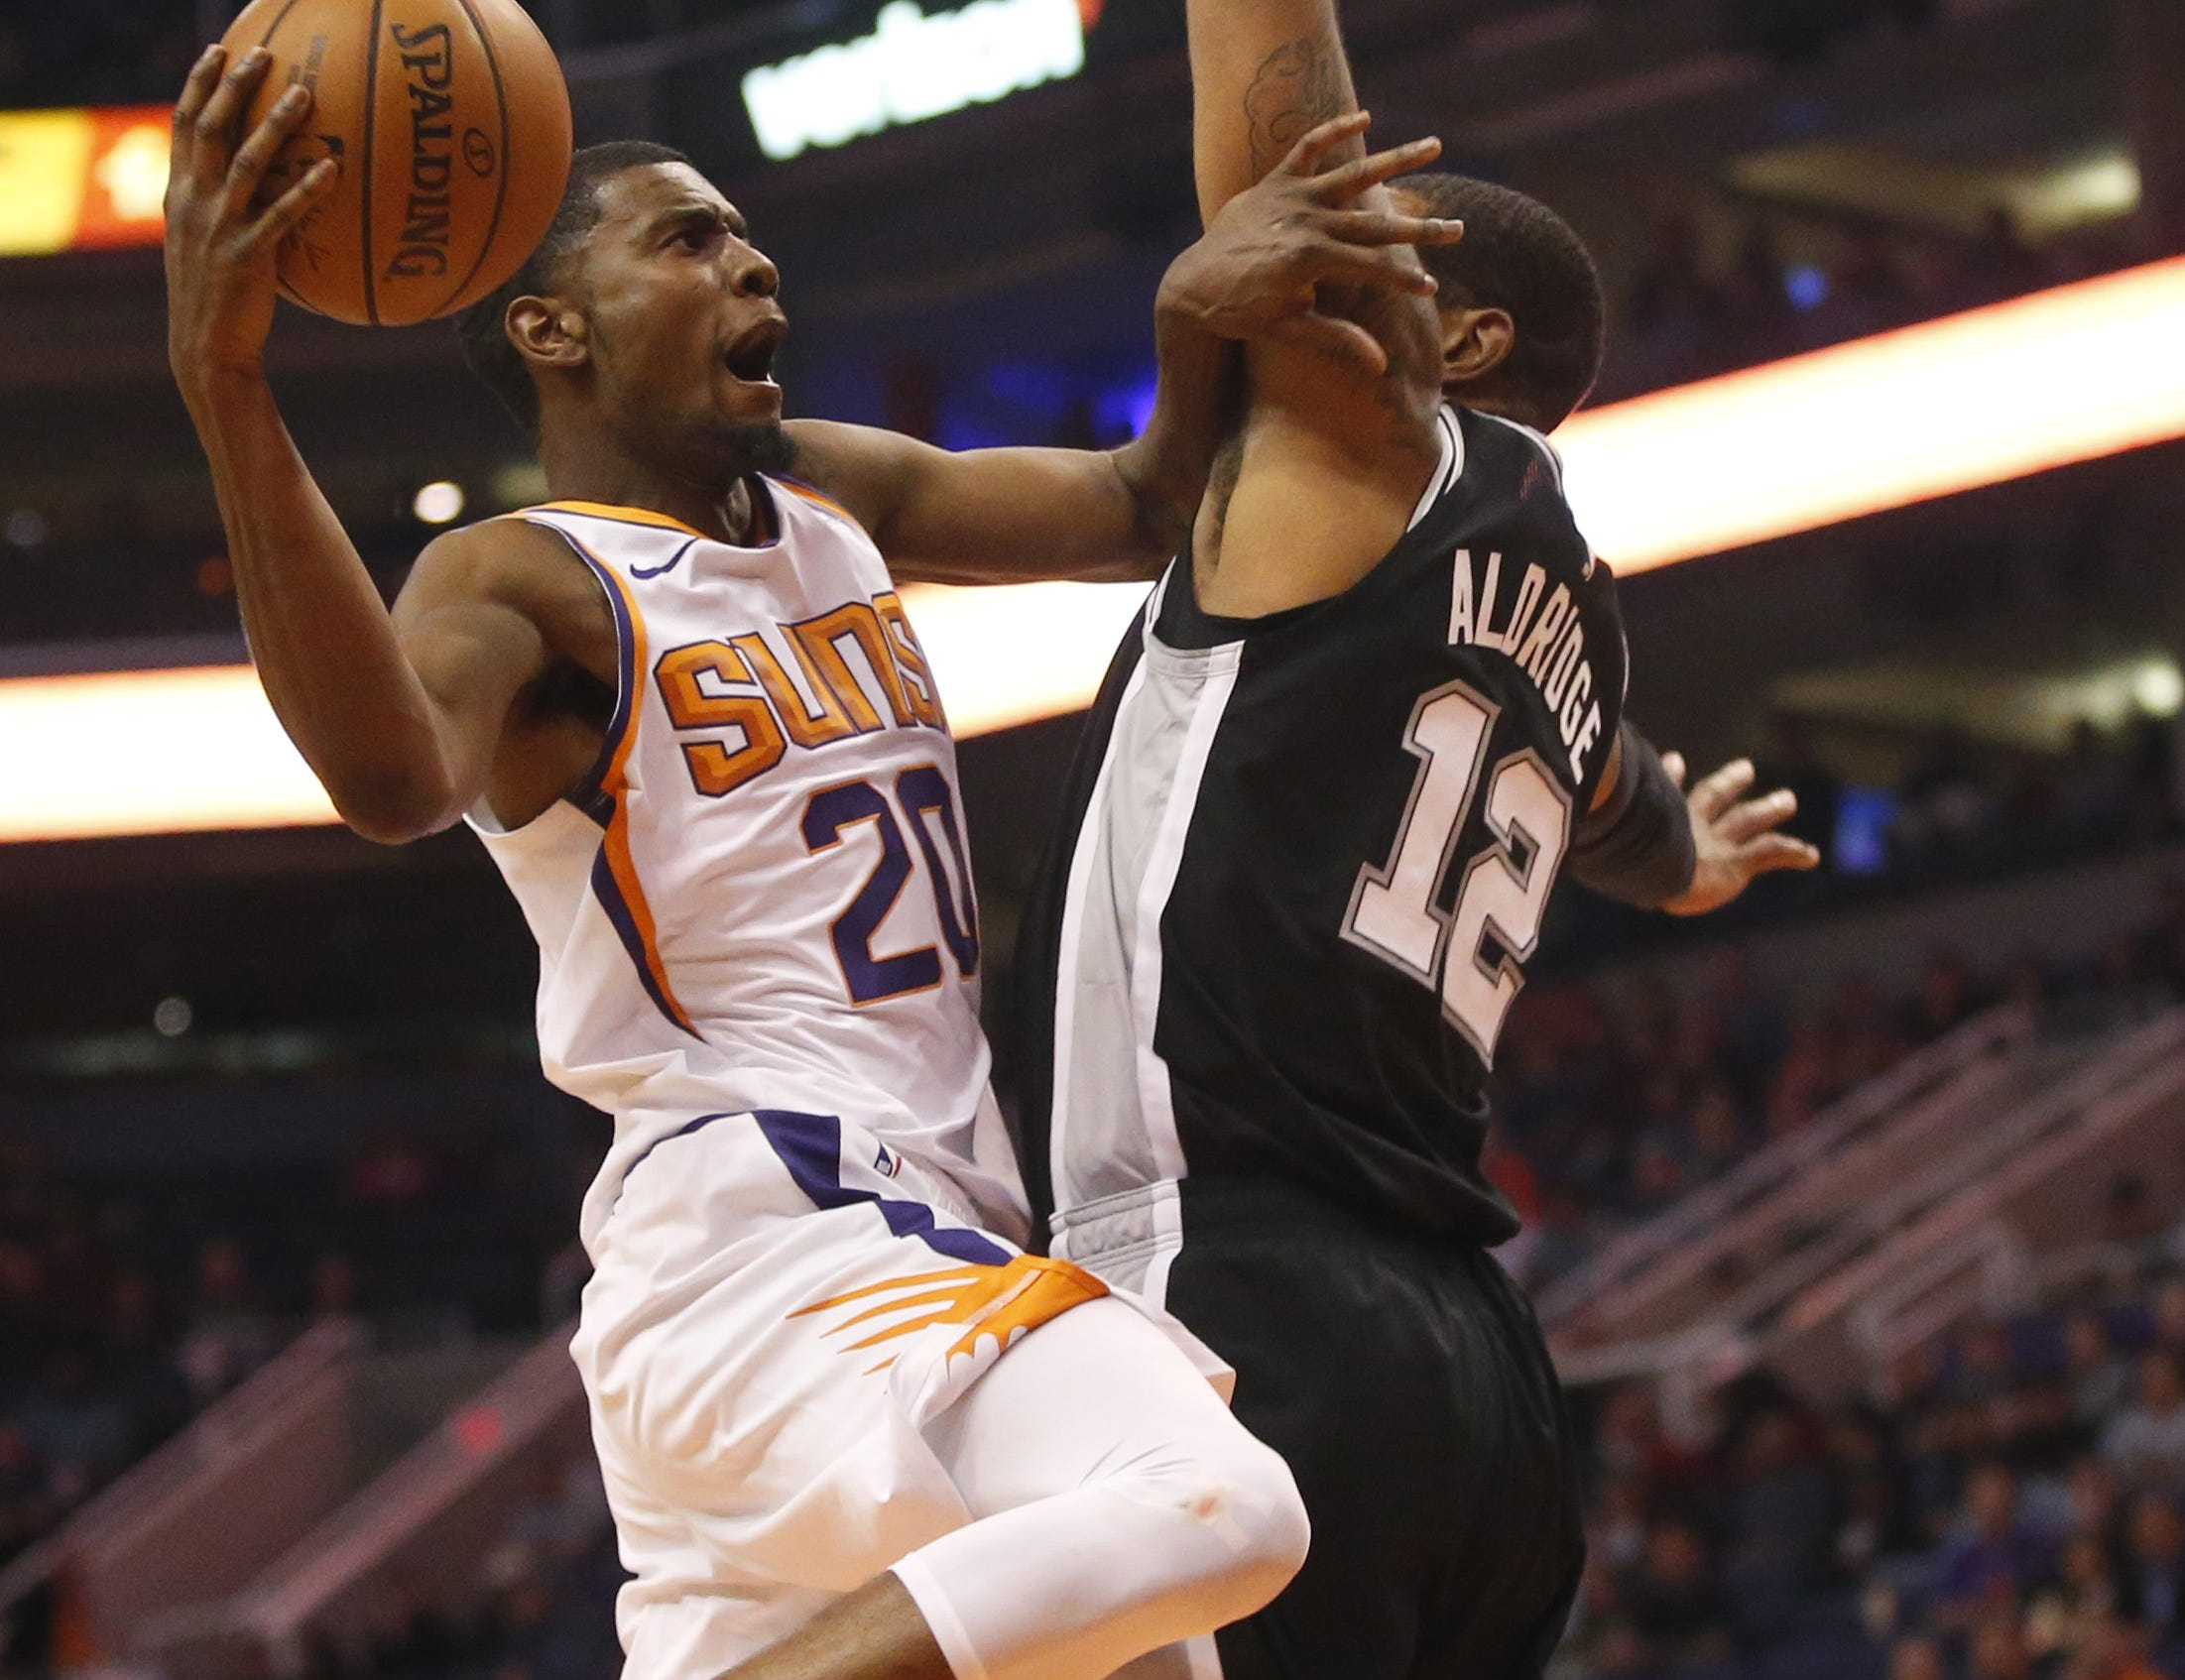 The Suns' Josh Jackson (20) shoots during Wednesday?s game vs. the Spurs. Visit suns.azcentral.com for a recap.   Cheryl Evans/The Republic Phoenix Suns forward Josh Jackson (20) takes a shot wile being guarded by San Antonio Spurs forward LaMarcus Aldridge (12) during a NBA game at Talking Stick Arena in Phoenix on November 14.